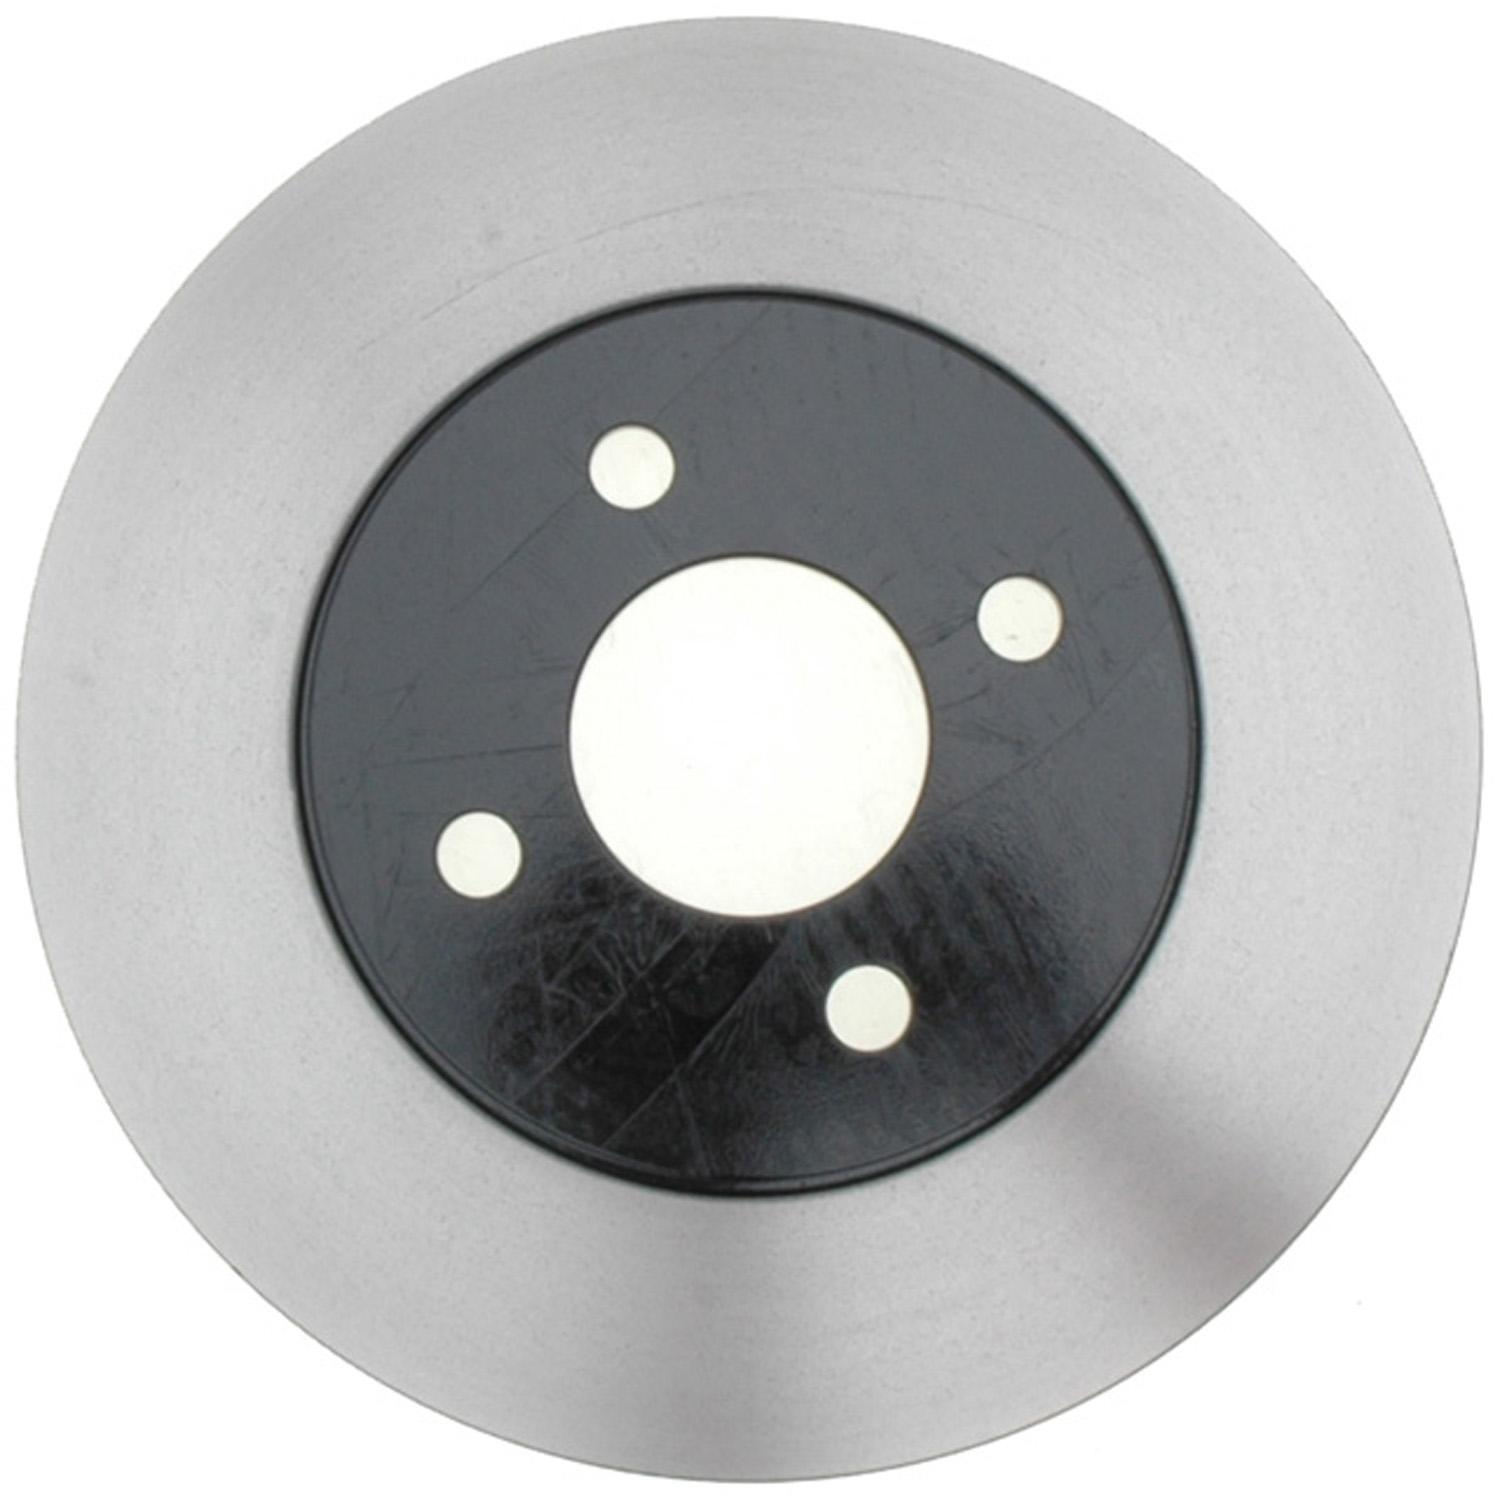 ACDELCO PROFESSIONAL BRAKES - Disc Brake Rotor (Front) - ADU 18A1585